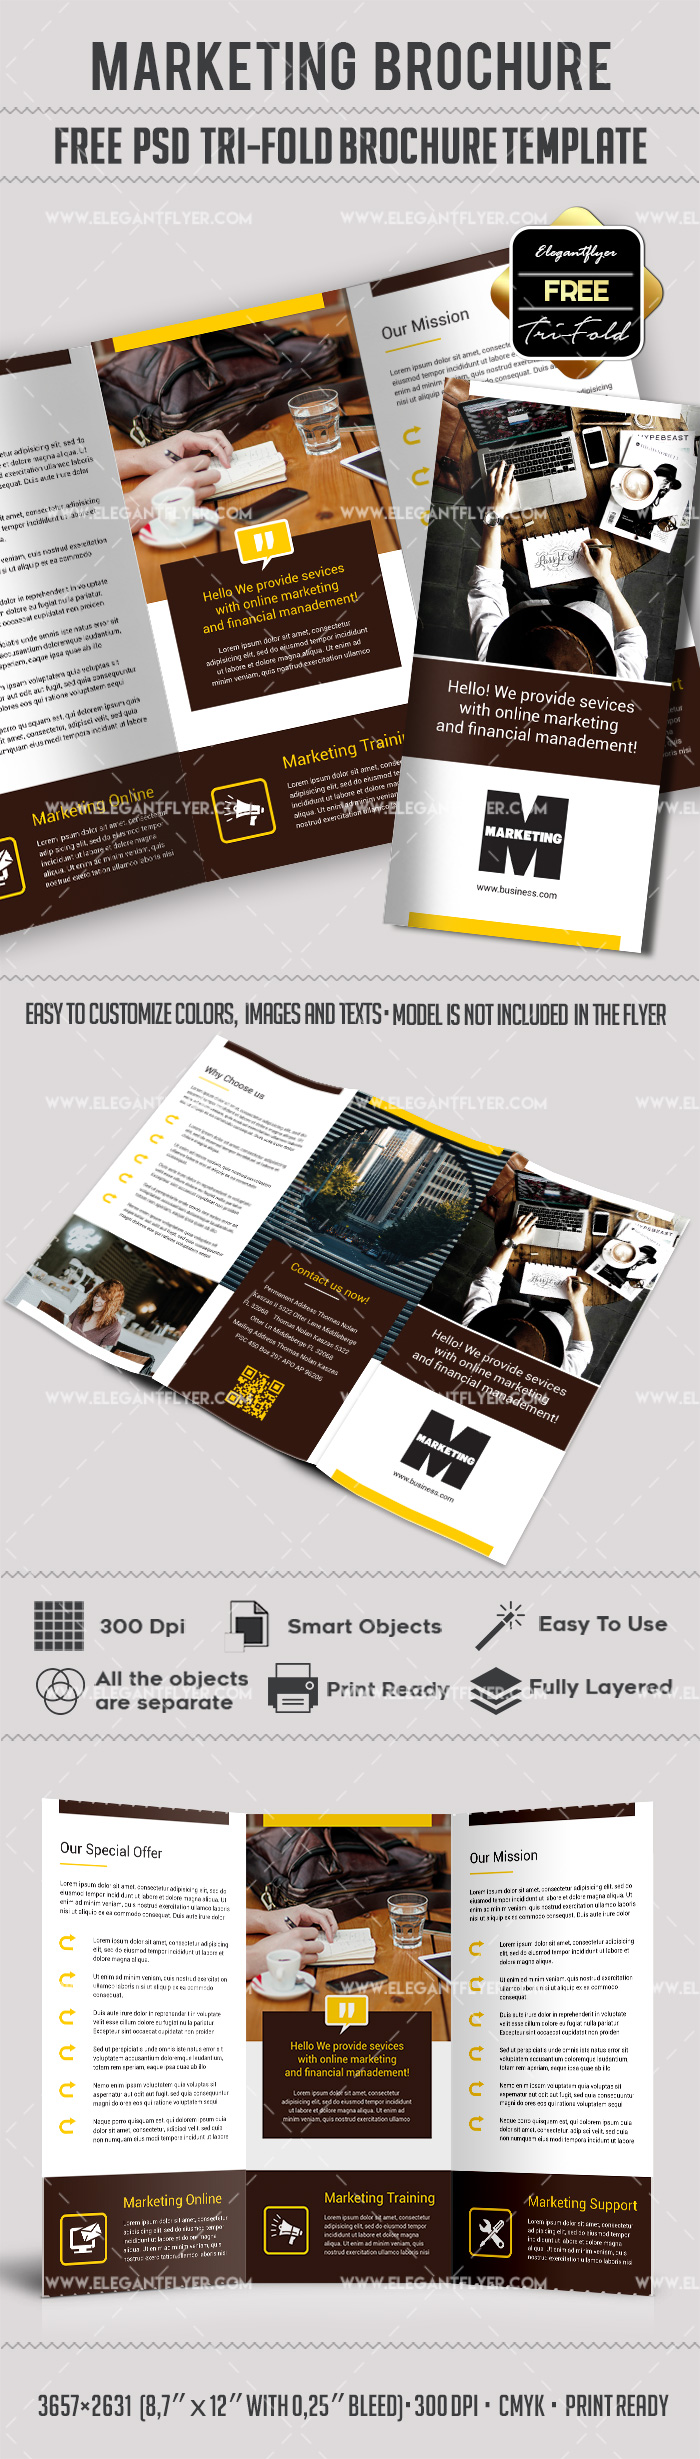 Marketing free tri fold psd brochure template by for Tri fold brochure template download